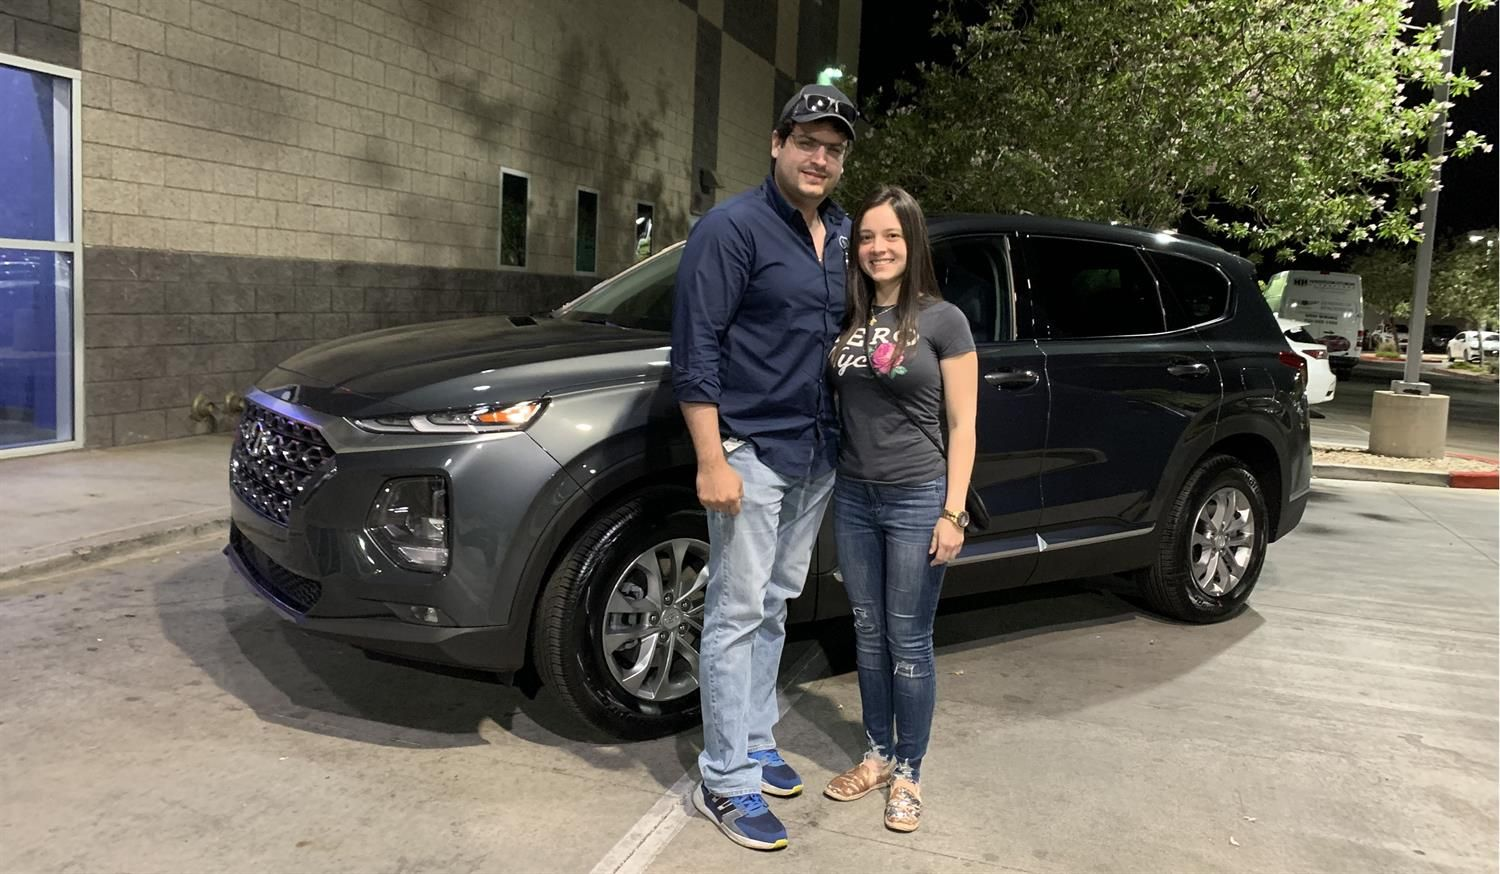 Ricardo We Hope You Enjoy Your New 2020 Hyundai Santa Fe Congratulations And Best Wishes From Henderson Hyun New Hyundai Hyundai Dealership Hyundai Santa Fe